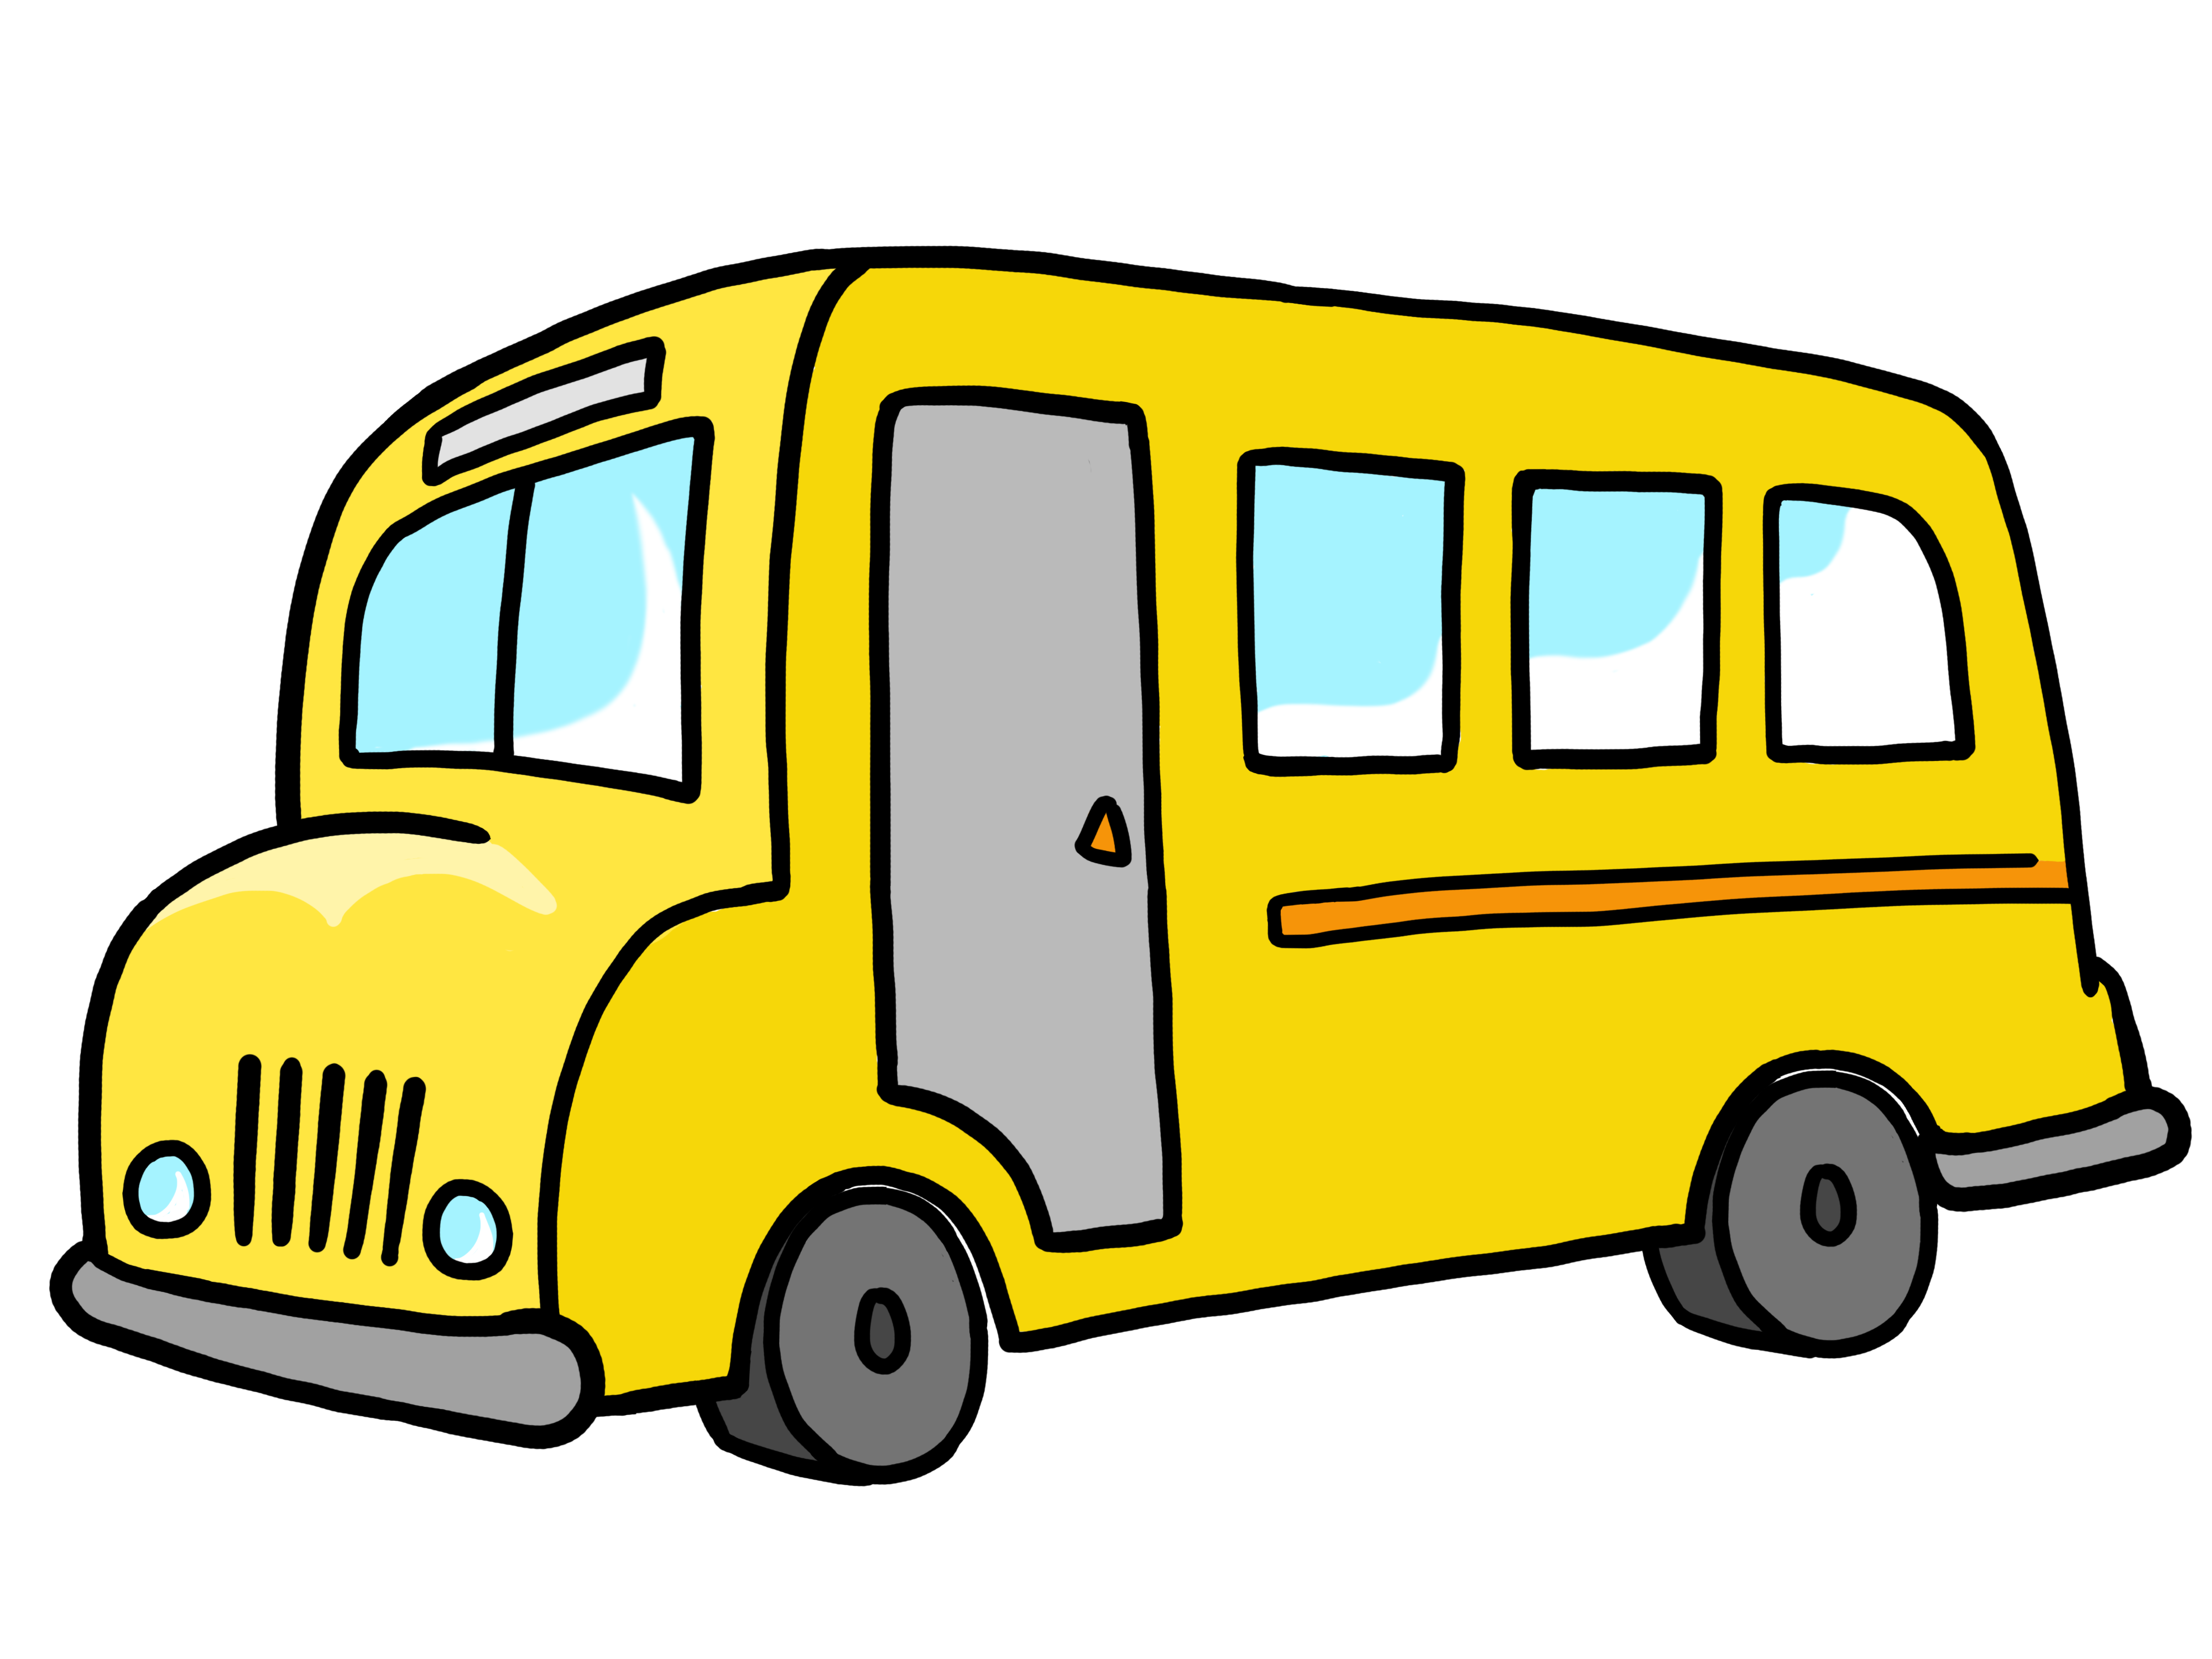 Shuttle bus clipart clipart images gallery for free download.